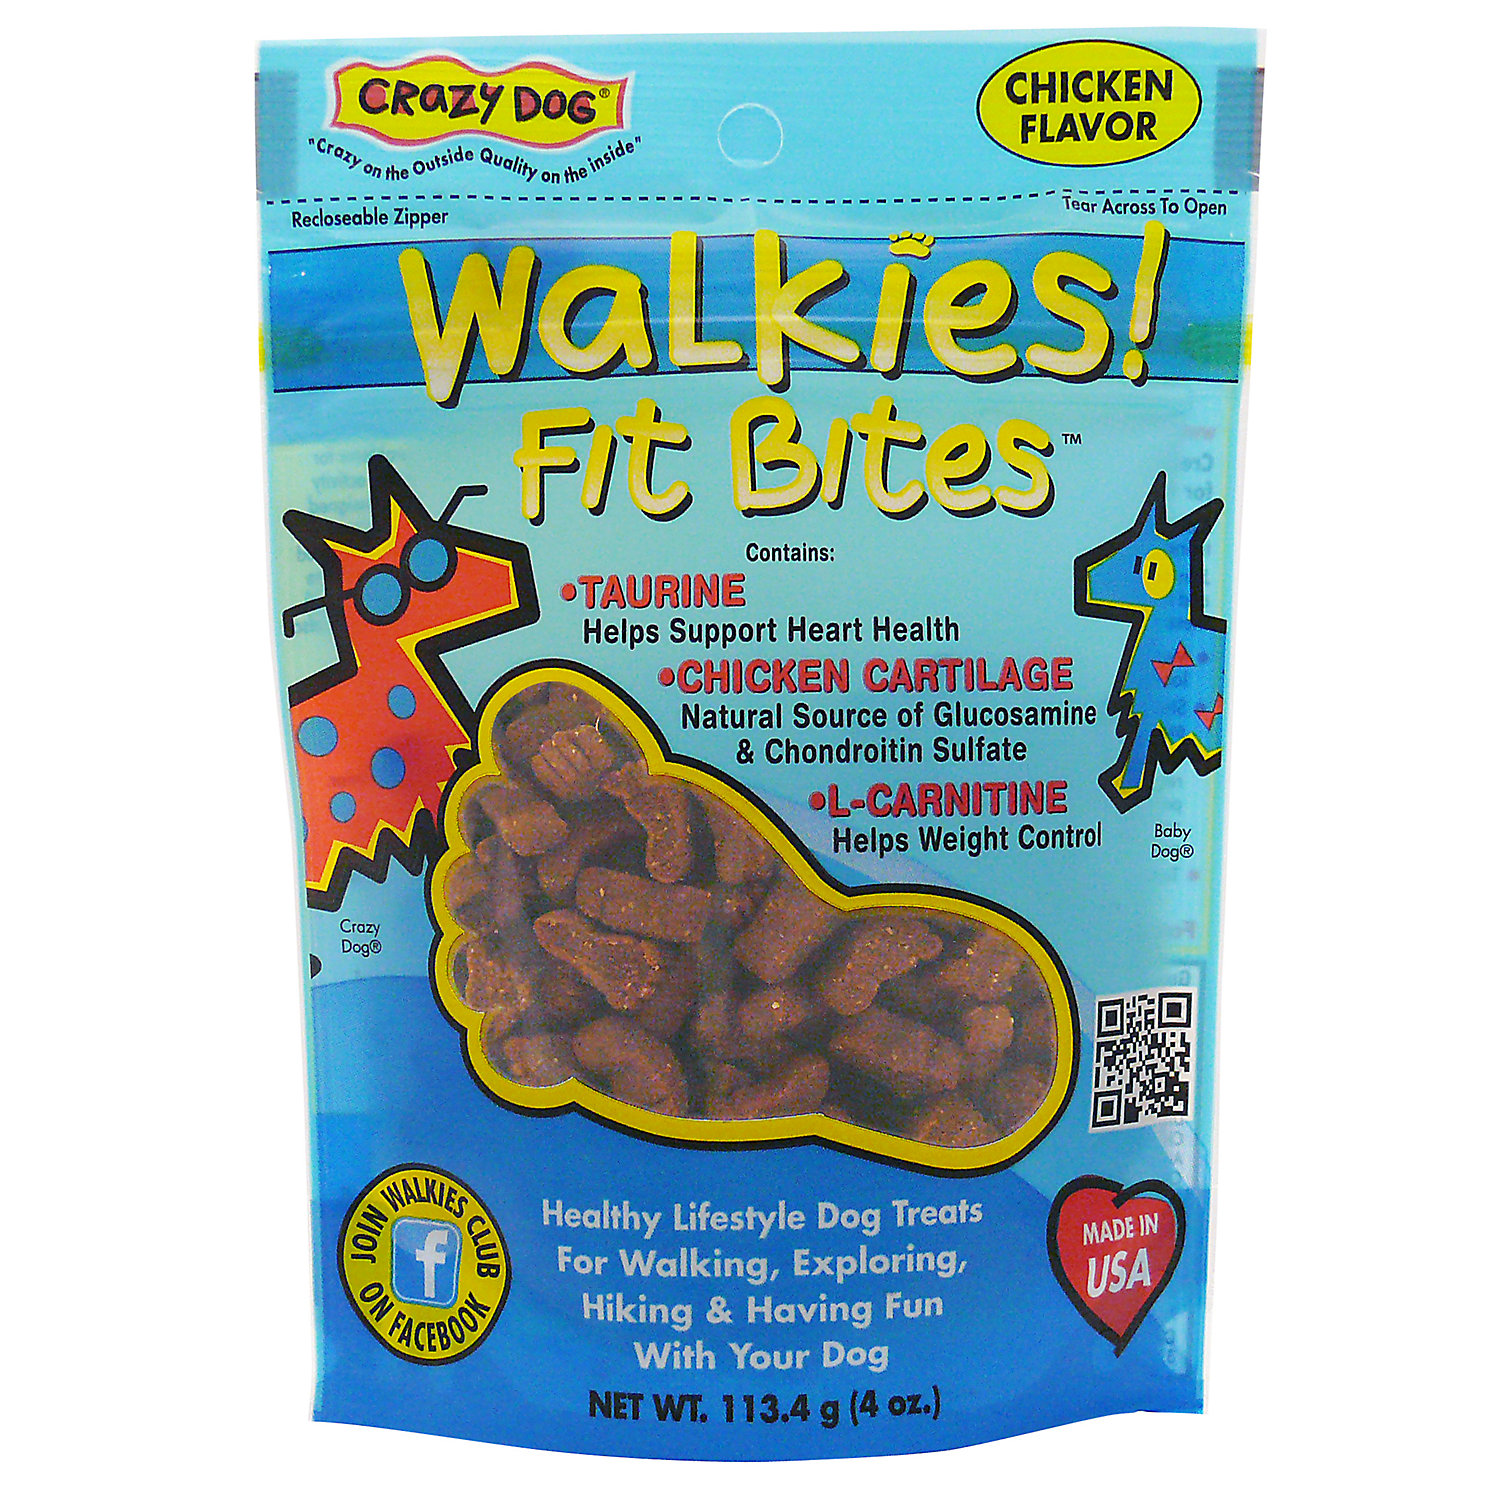 Crazy Dog Walkies Fit Bites Chicken Dog Treats 4 Oz.